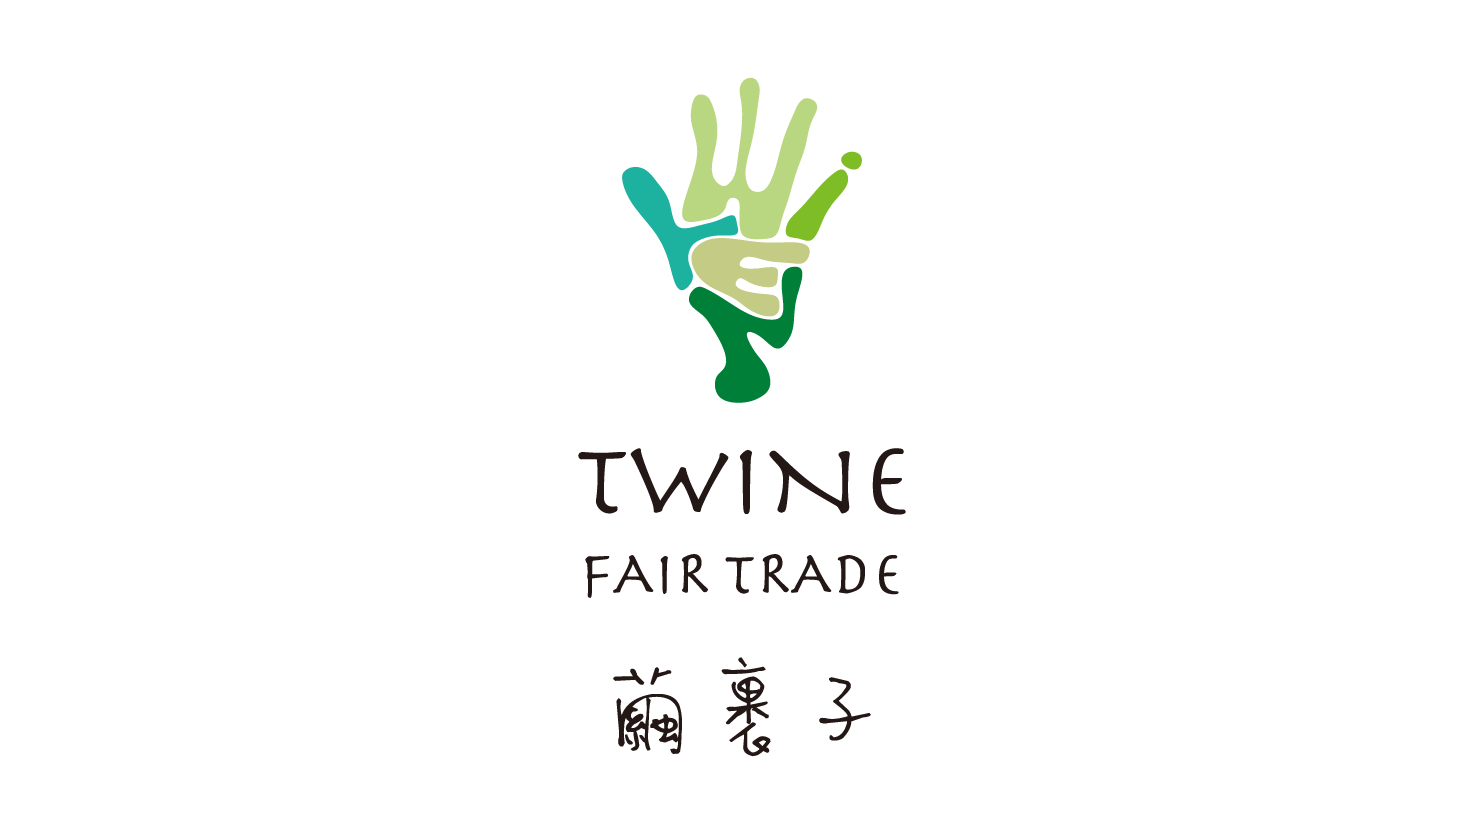 Optimising the value of fair trade using Taiwanese designs and traditional craft